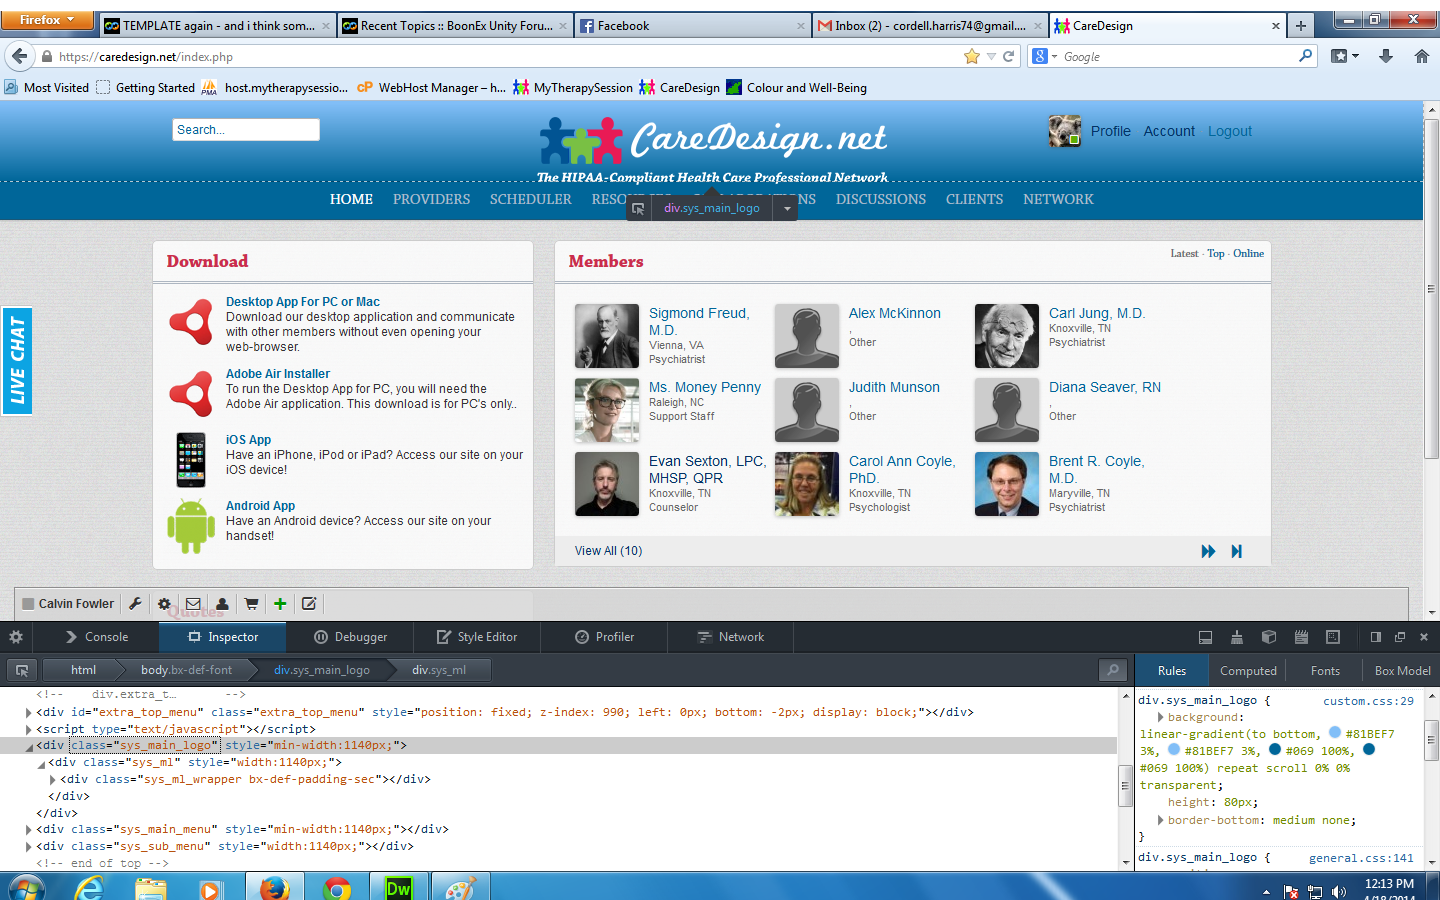 TEMPLATE again - and i think somekind of how to :: BoonEx Unity Forums